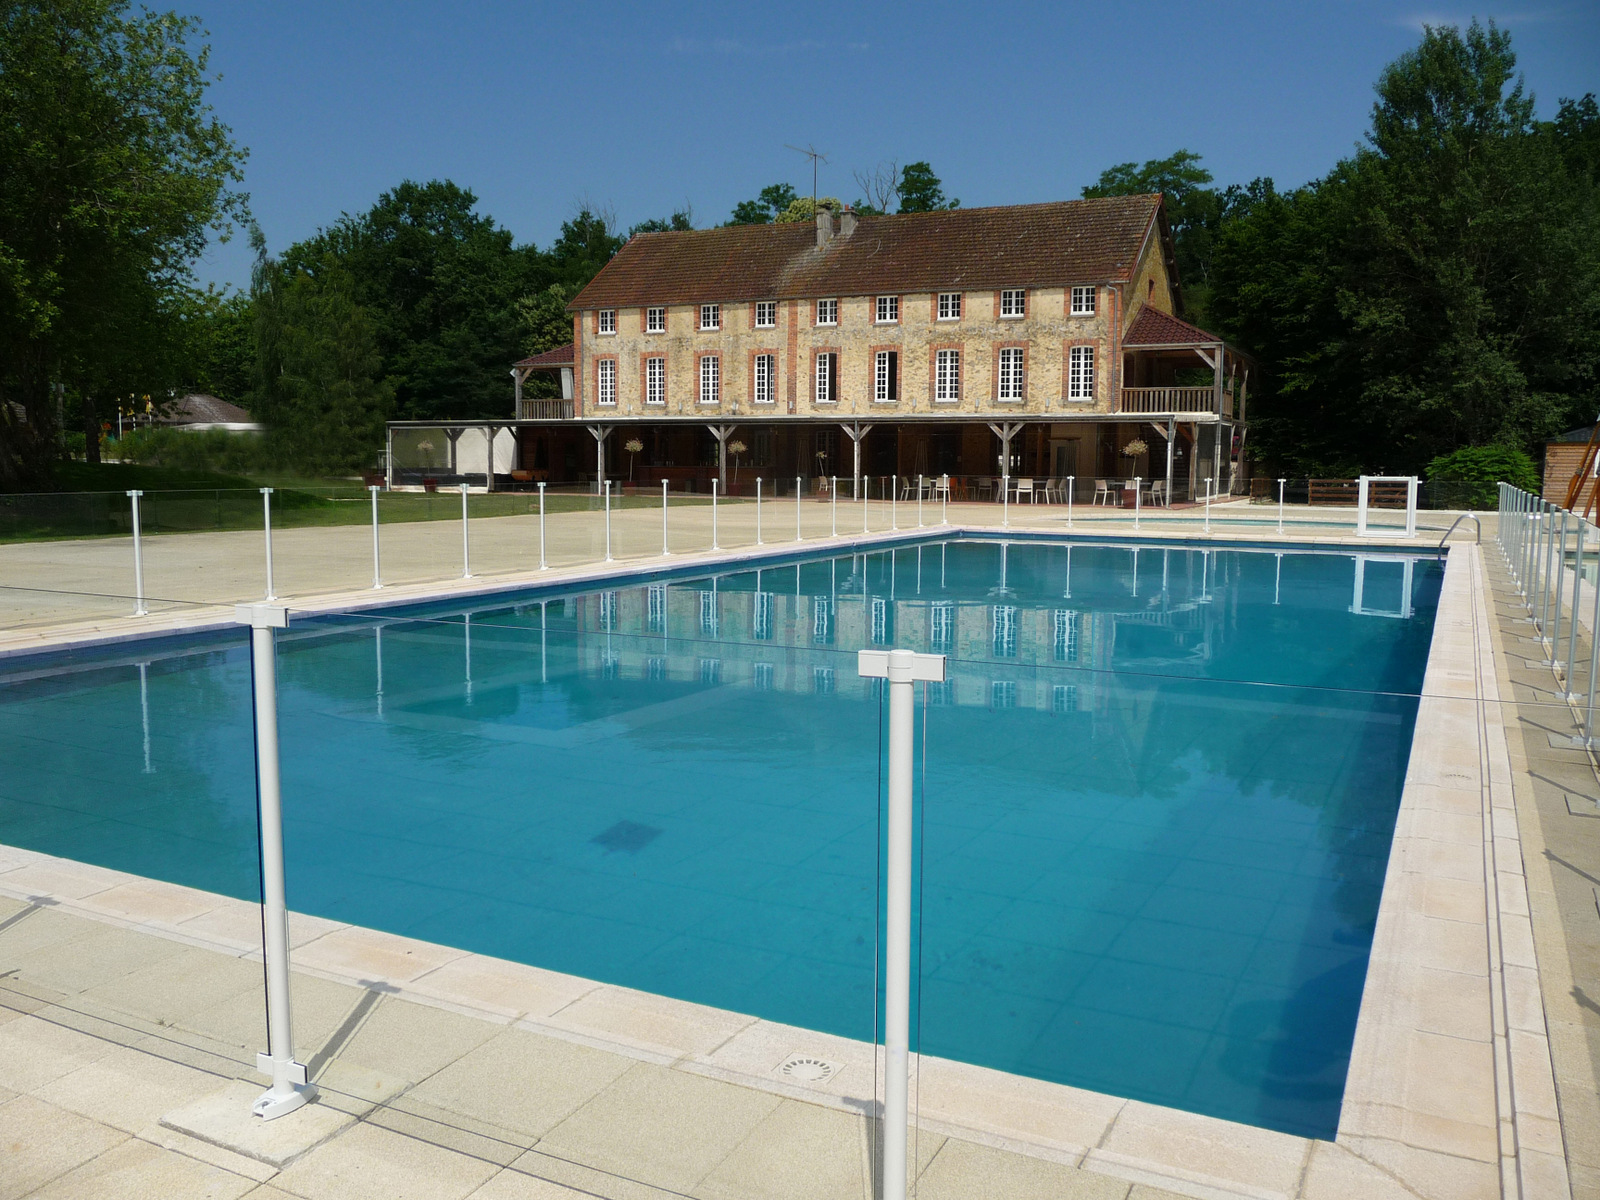 Cloture Demontable Jardin Cloture Filet Piscine Piscine Securite Enfant Barriere